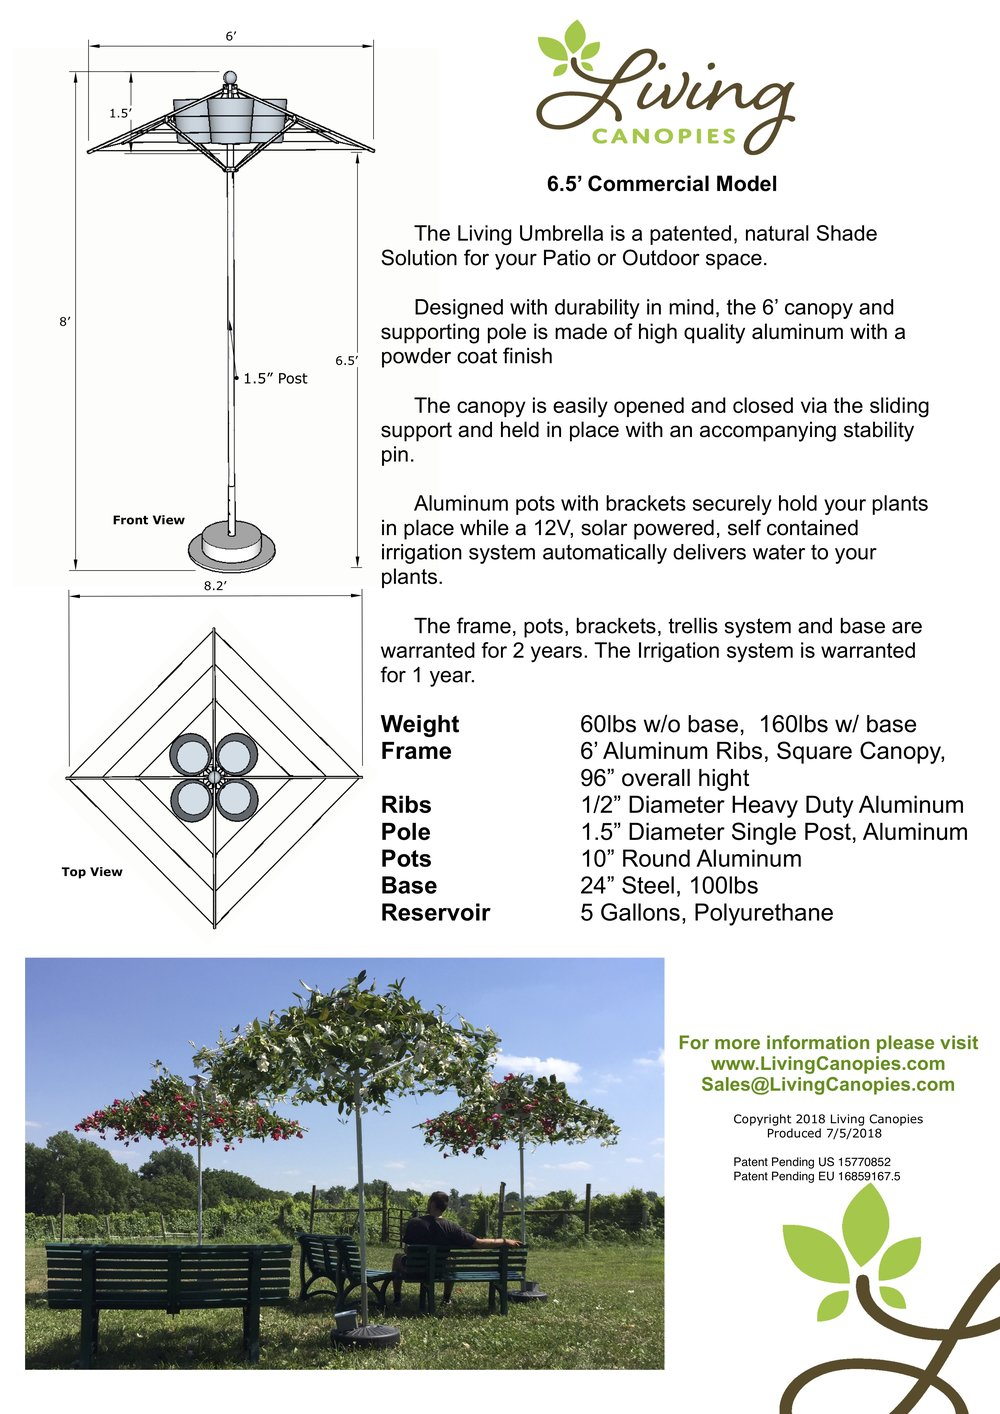 6.5' Commercial Model - Specification Sheet